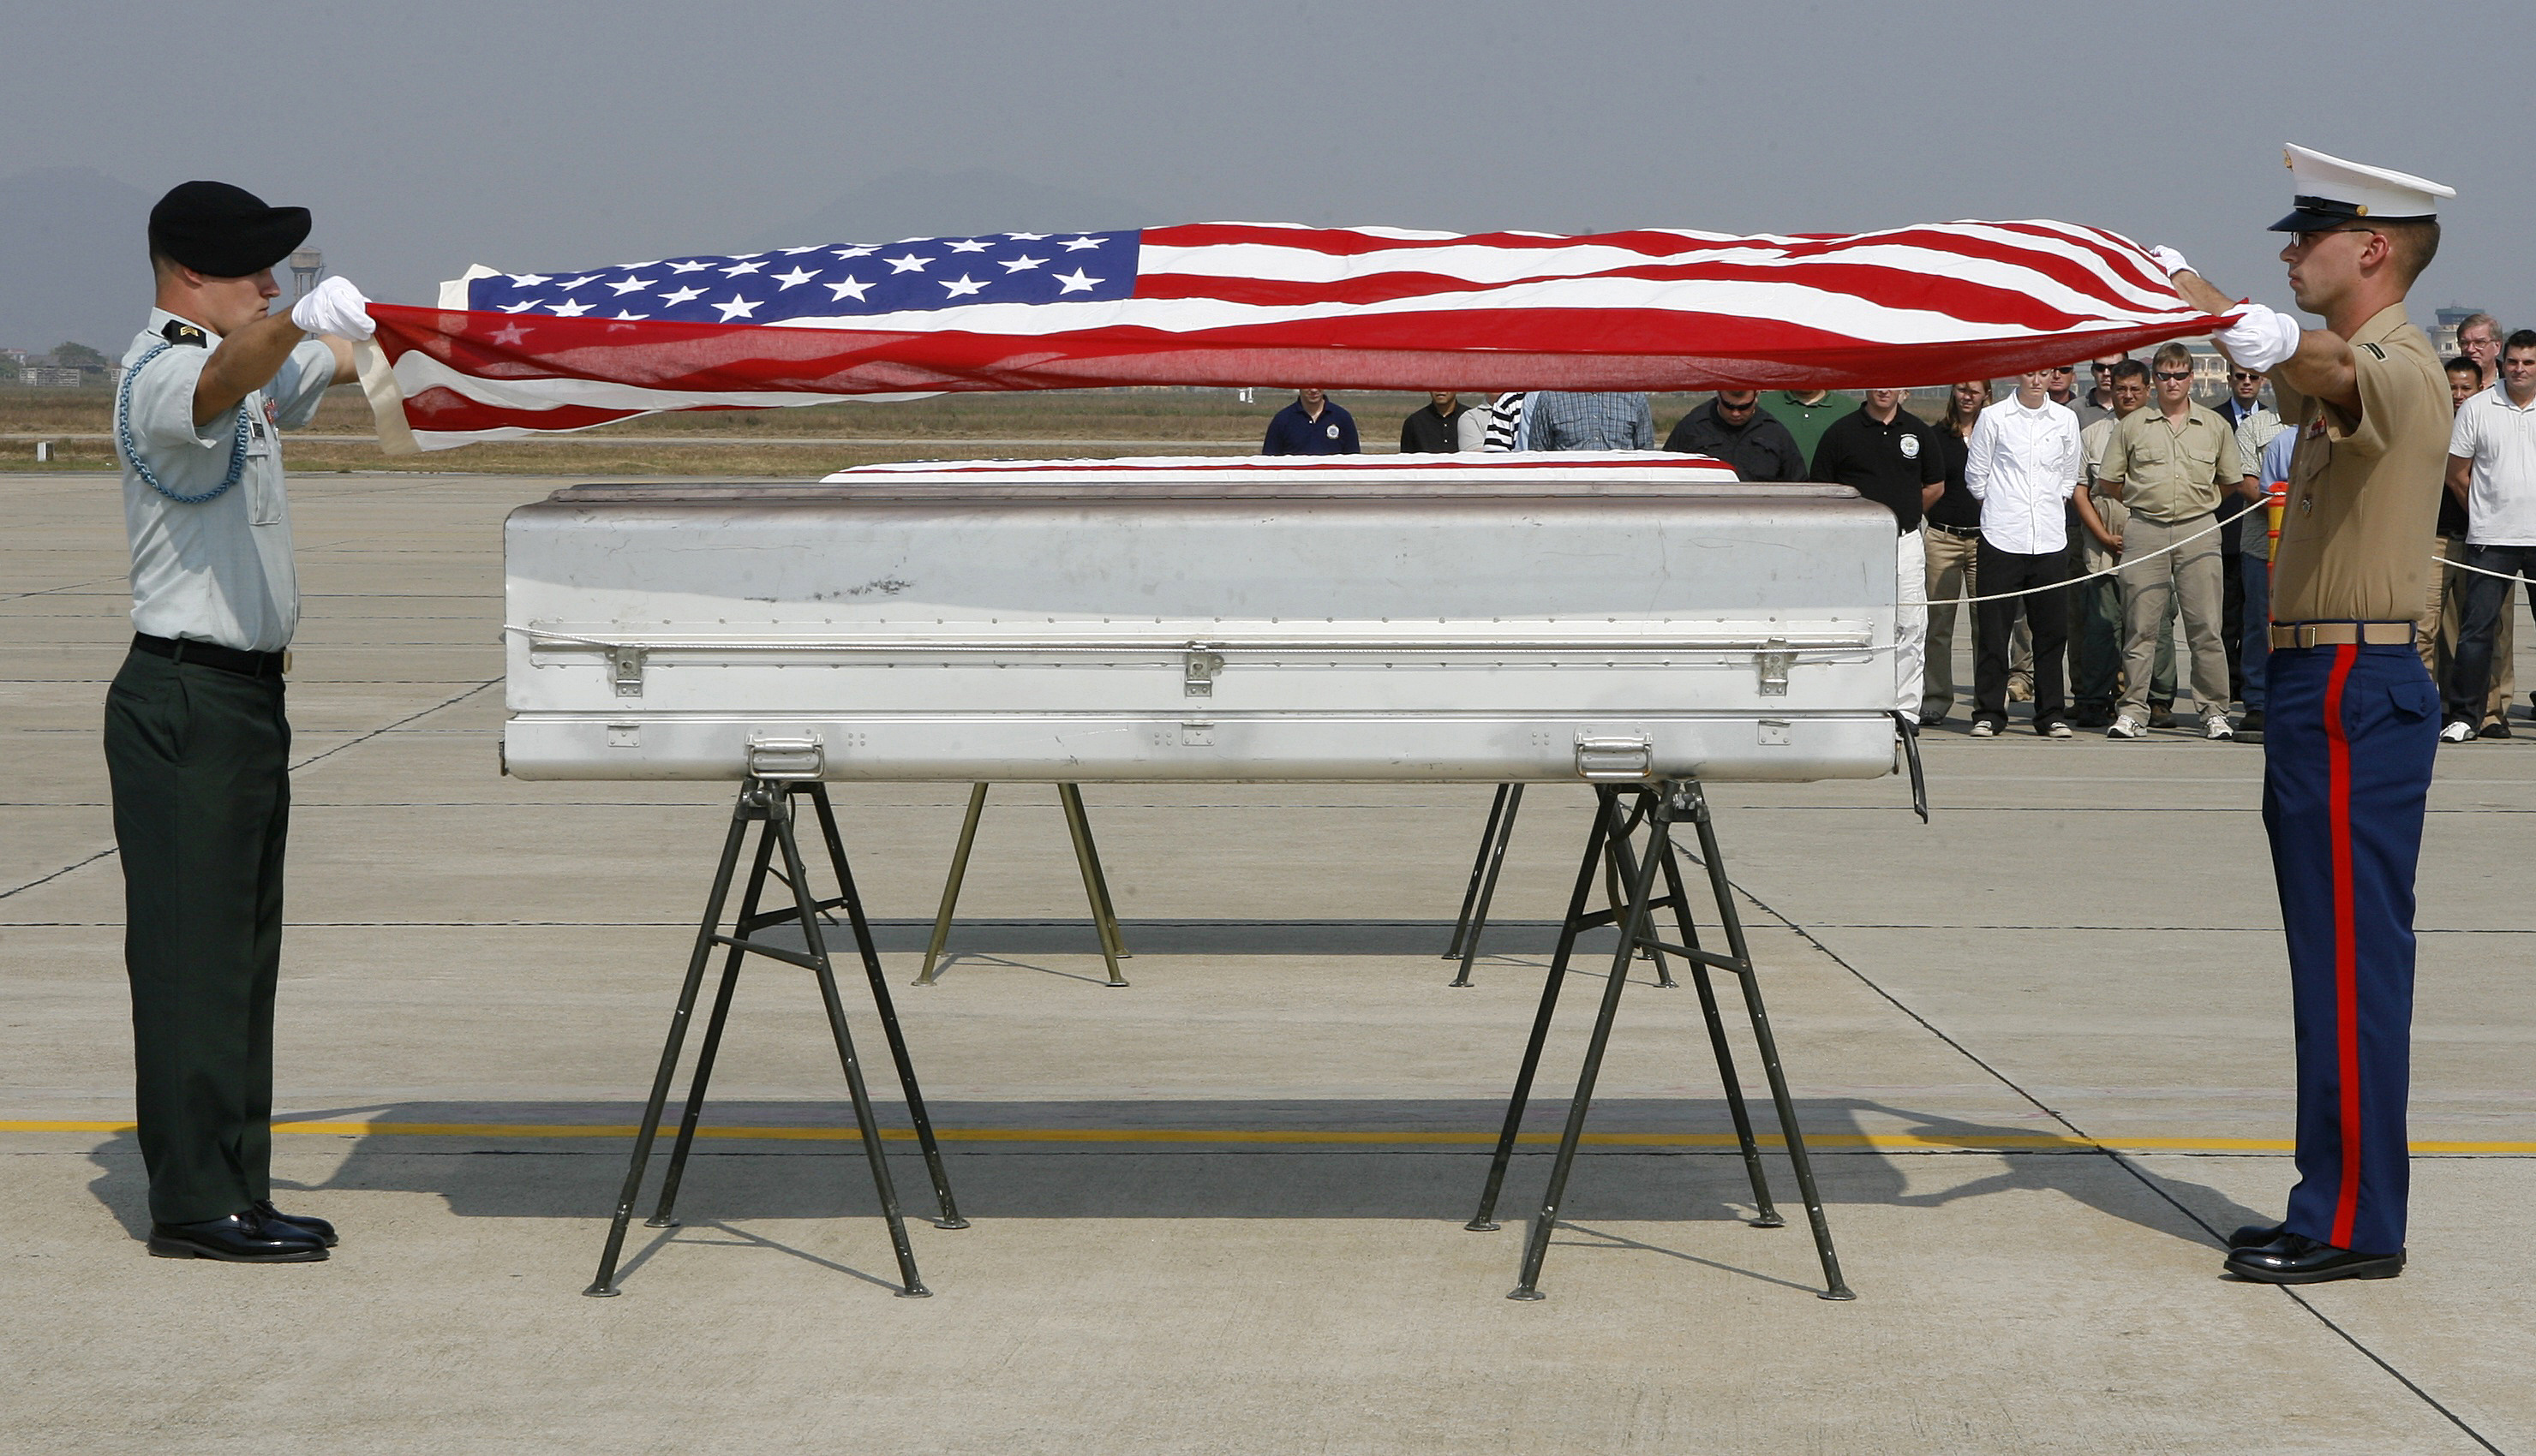 U.S. military personnel drape a U.S. flag over a coffin containing human remains believed to be a U.S serviceman missing in action during the Vietnam War, at a repatriation ceremony at Hanoi's Noi Bai airport December 9, 2008.  Four cases of human re...